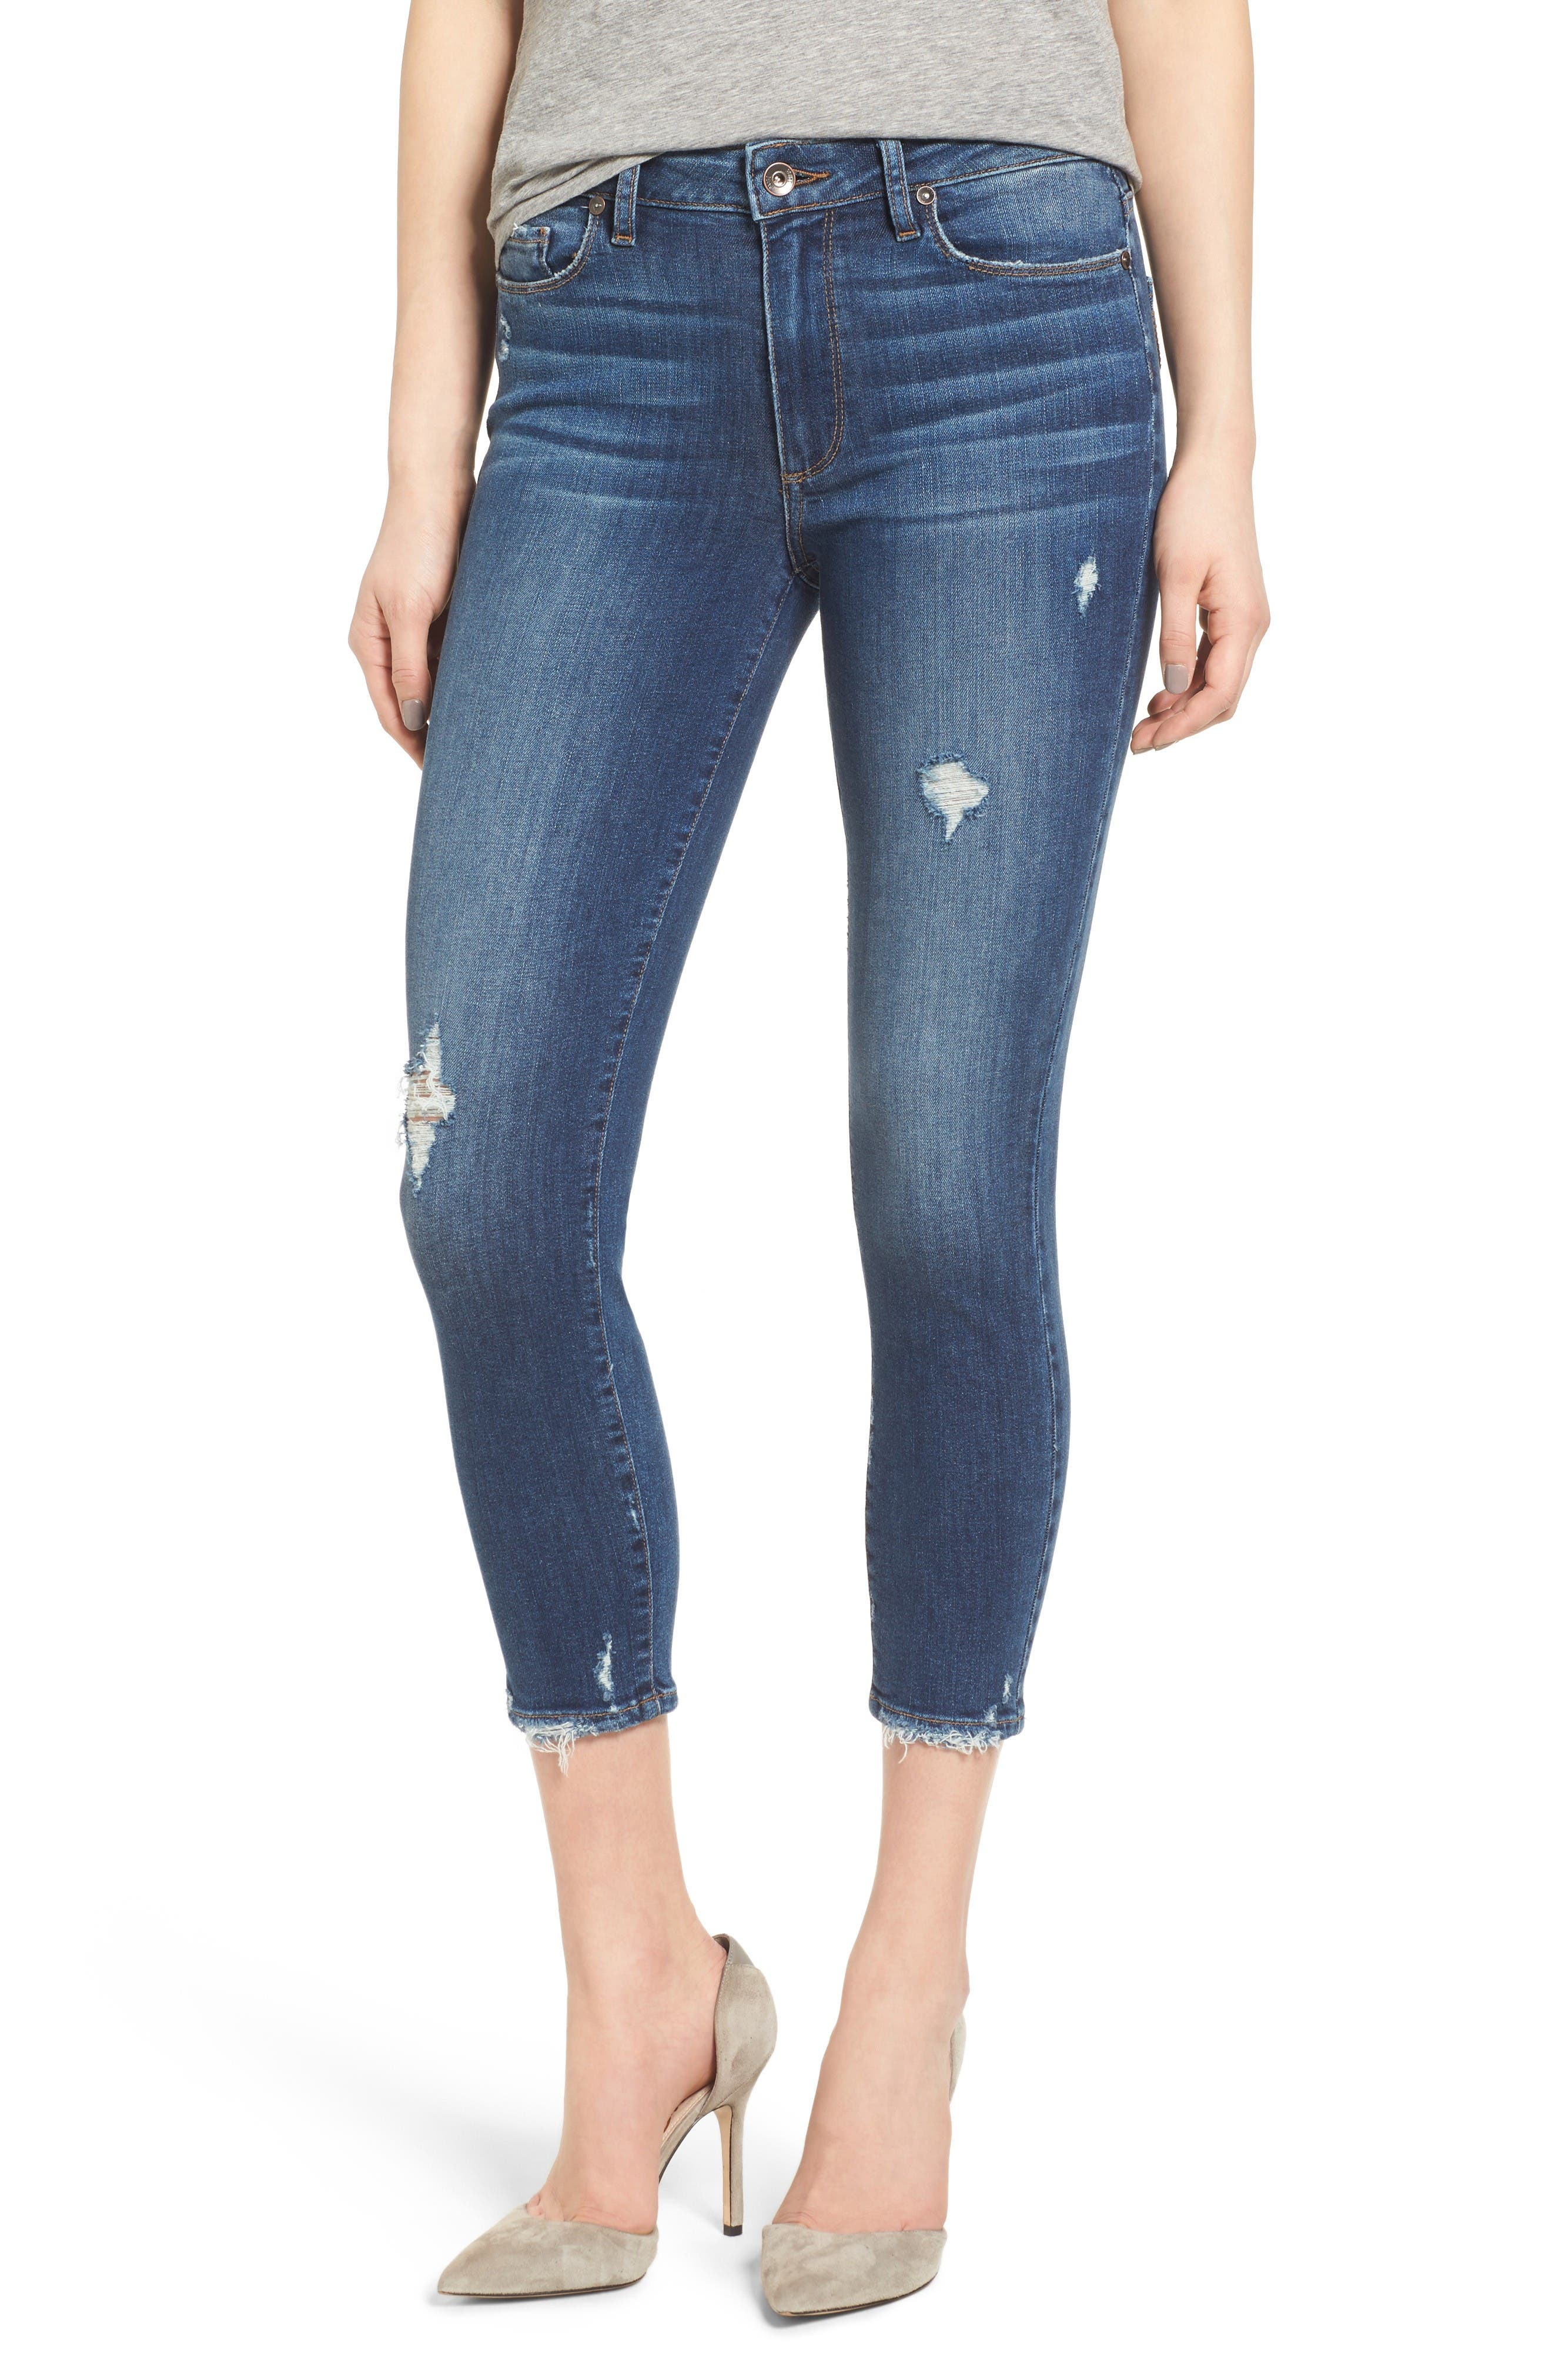 Transcend - Hoxton High Waist Crop Skinny Jeans,                         Main,                         color, Nora Destructed